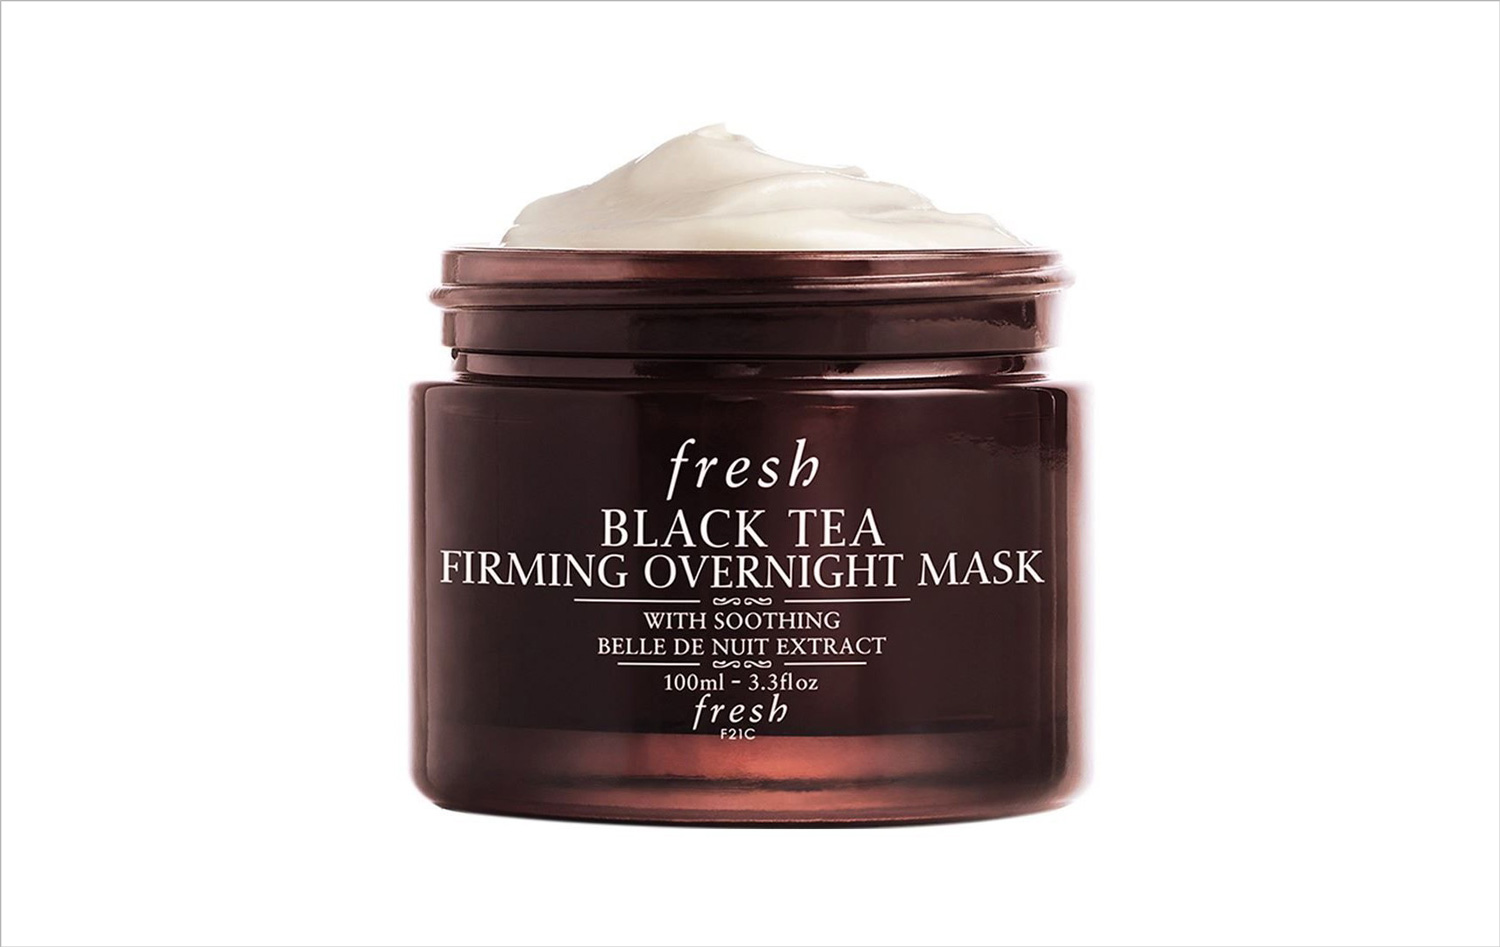 Fresh Black Tea Overnight Firming Mask by Fresh wedding beauty product ideas